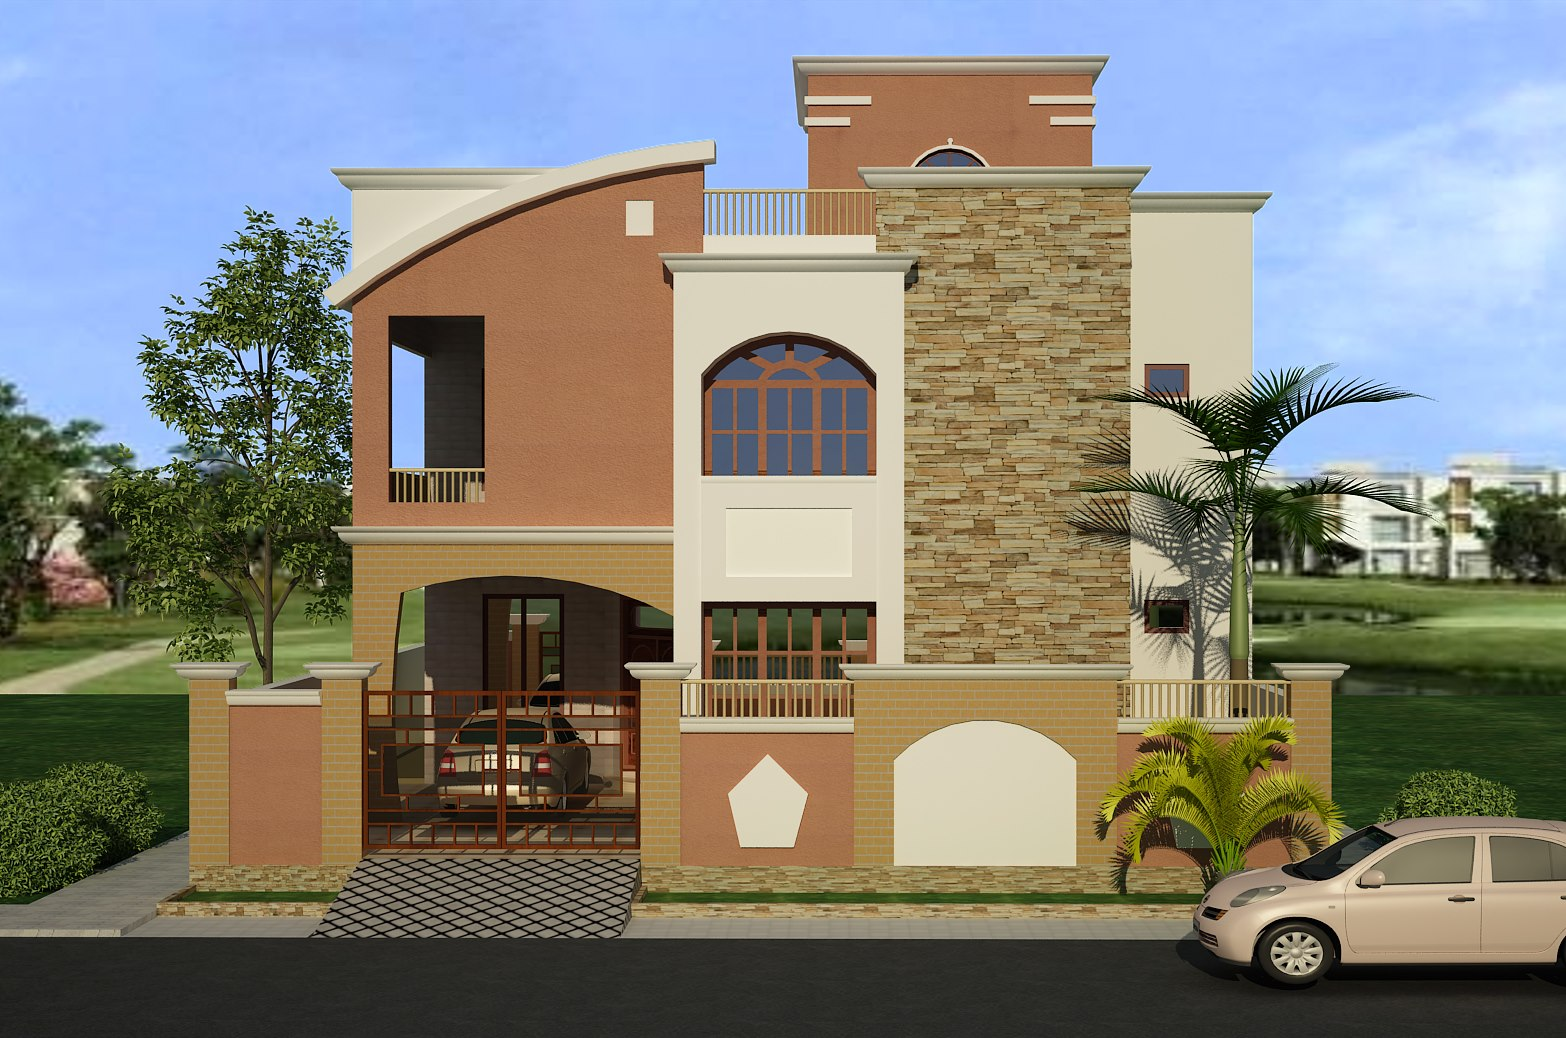 Front house elevation native home garden design for Pakistani new home designs exterior views